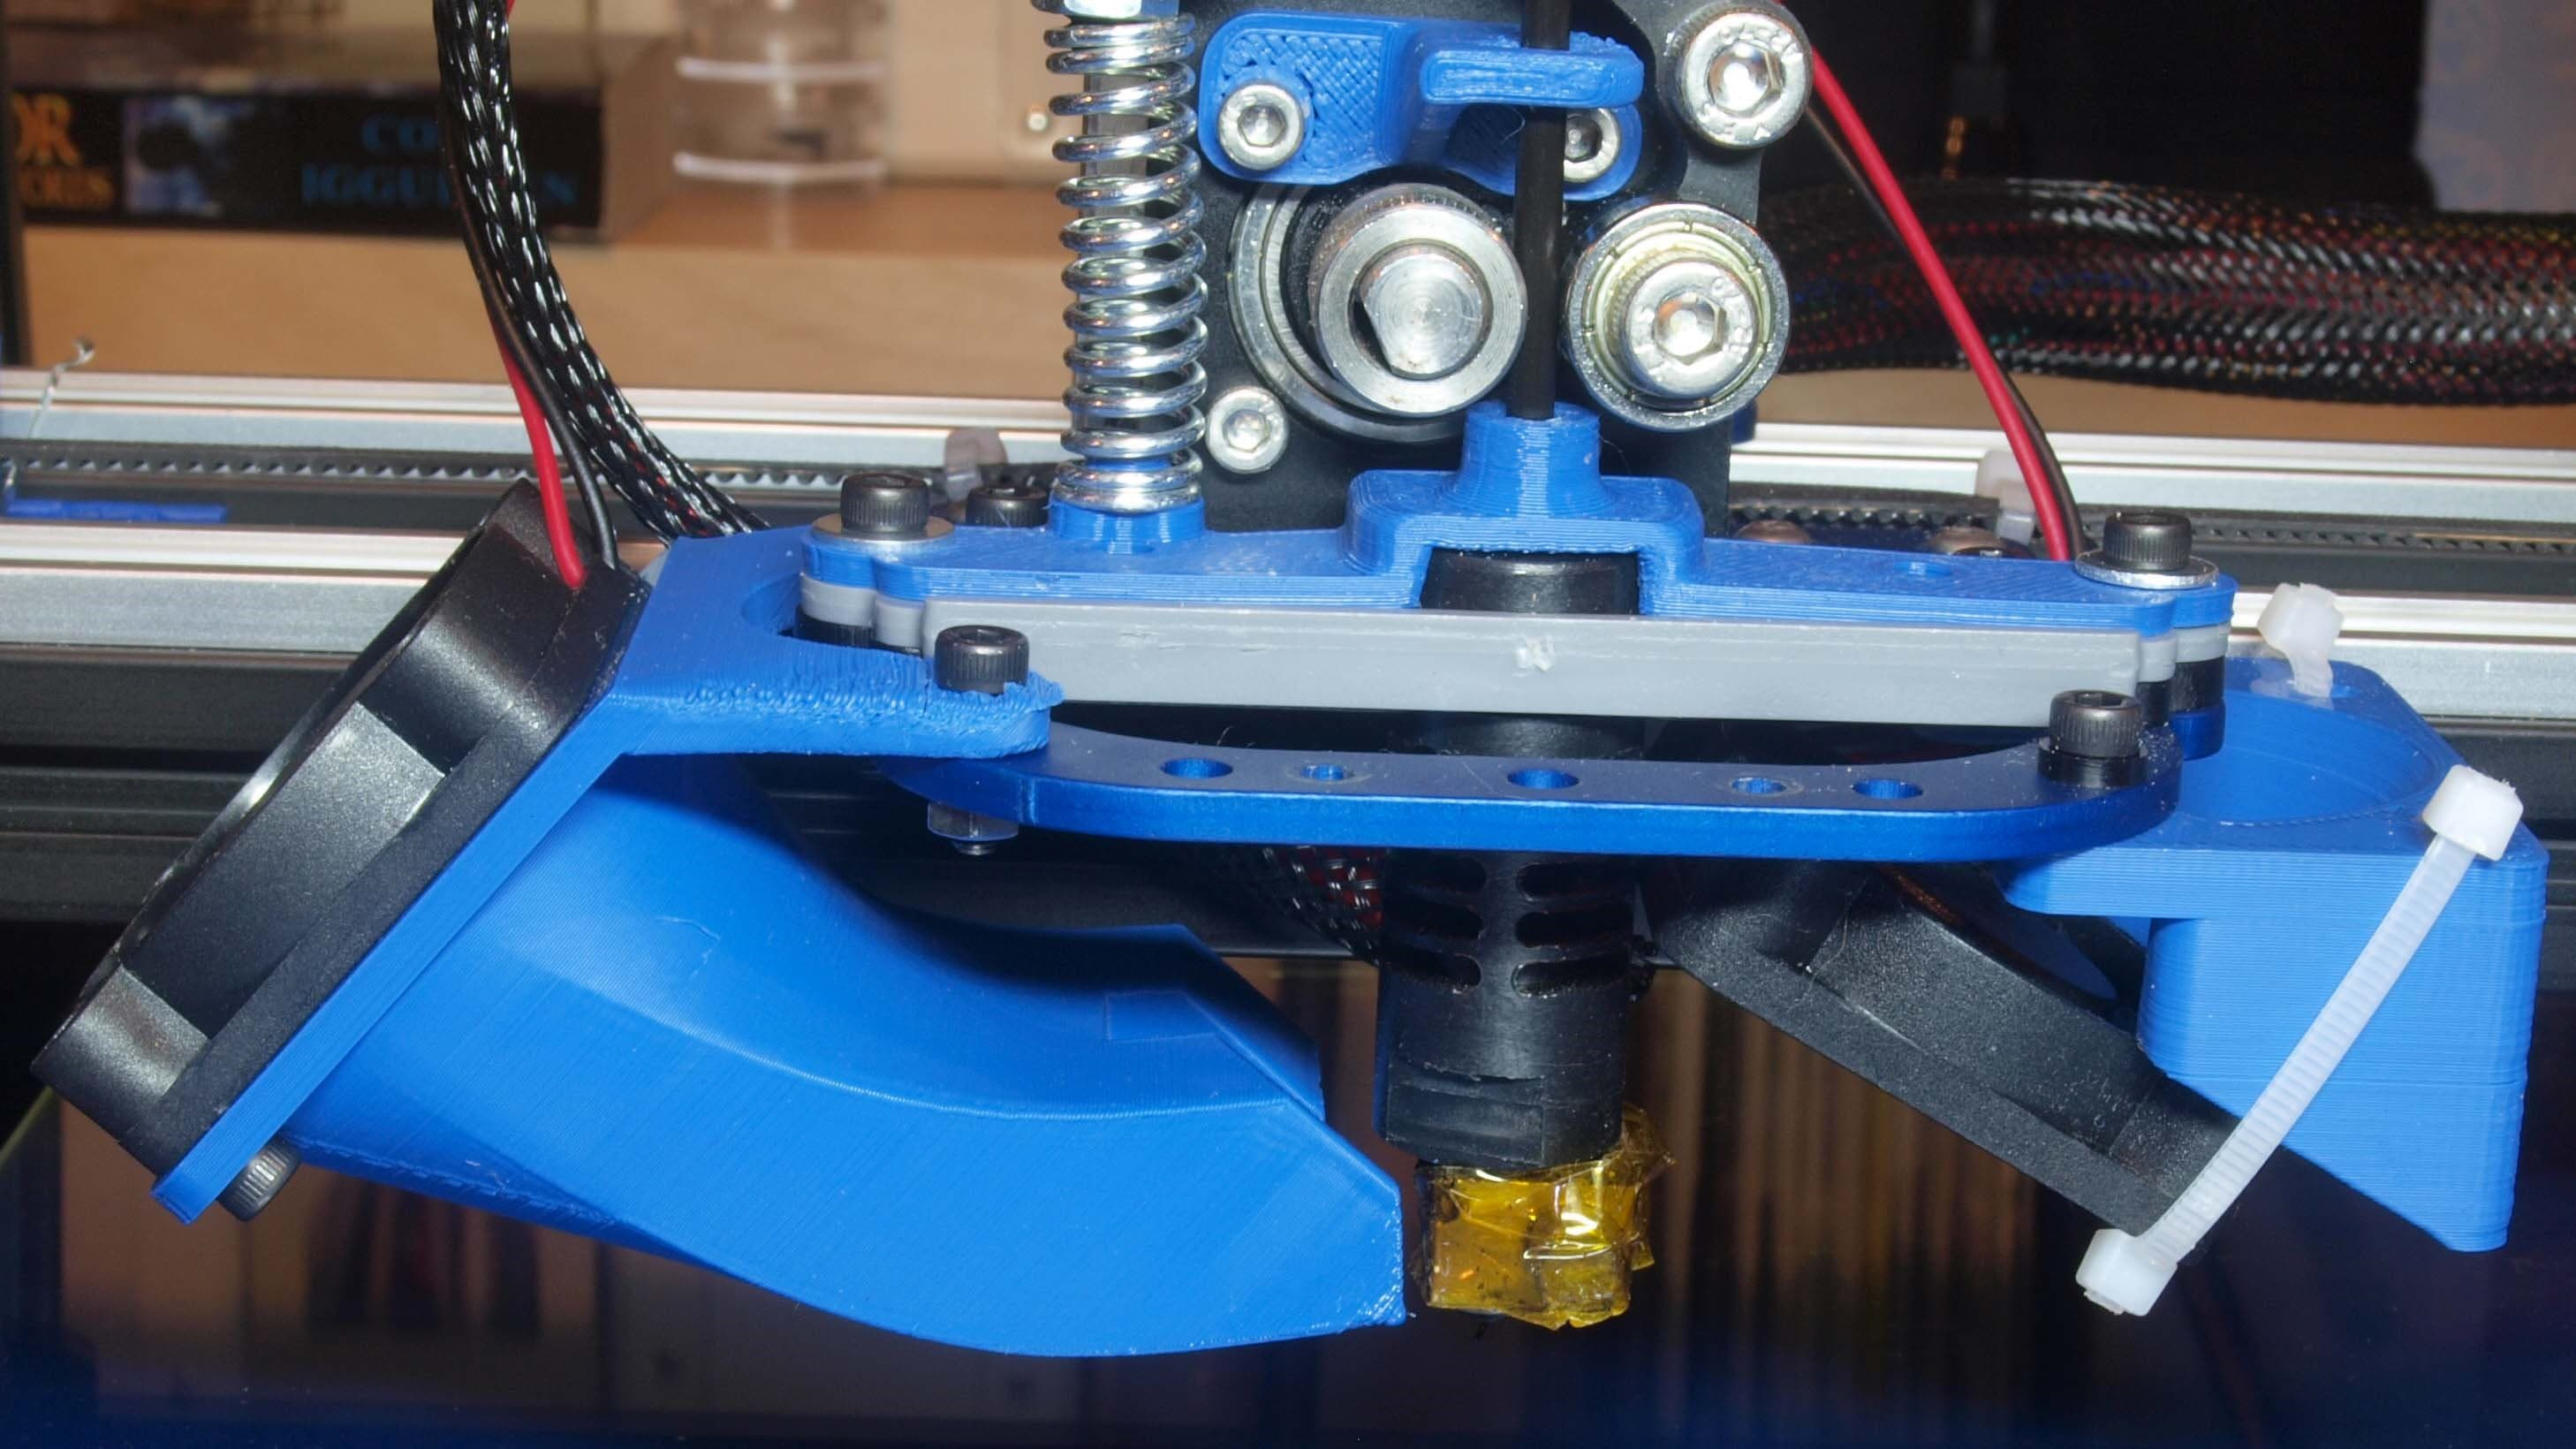 3D Printer Fan – Do I Really Need One? | All3DP